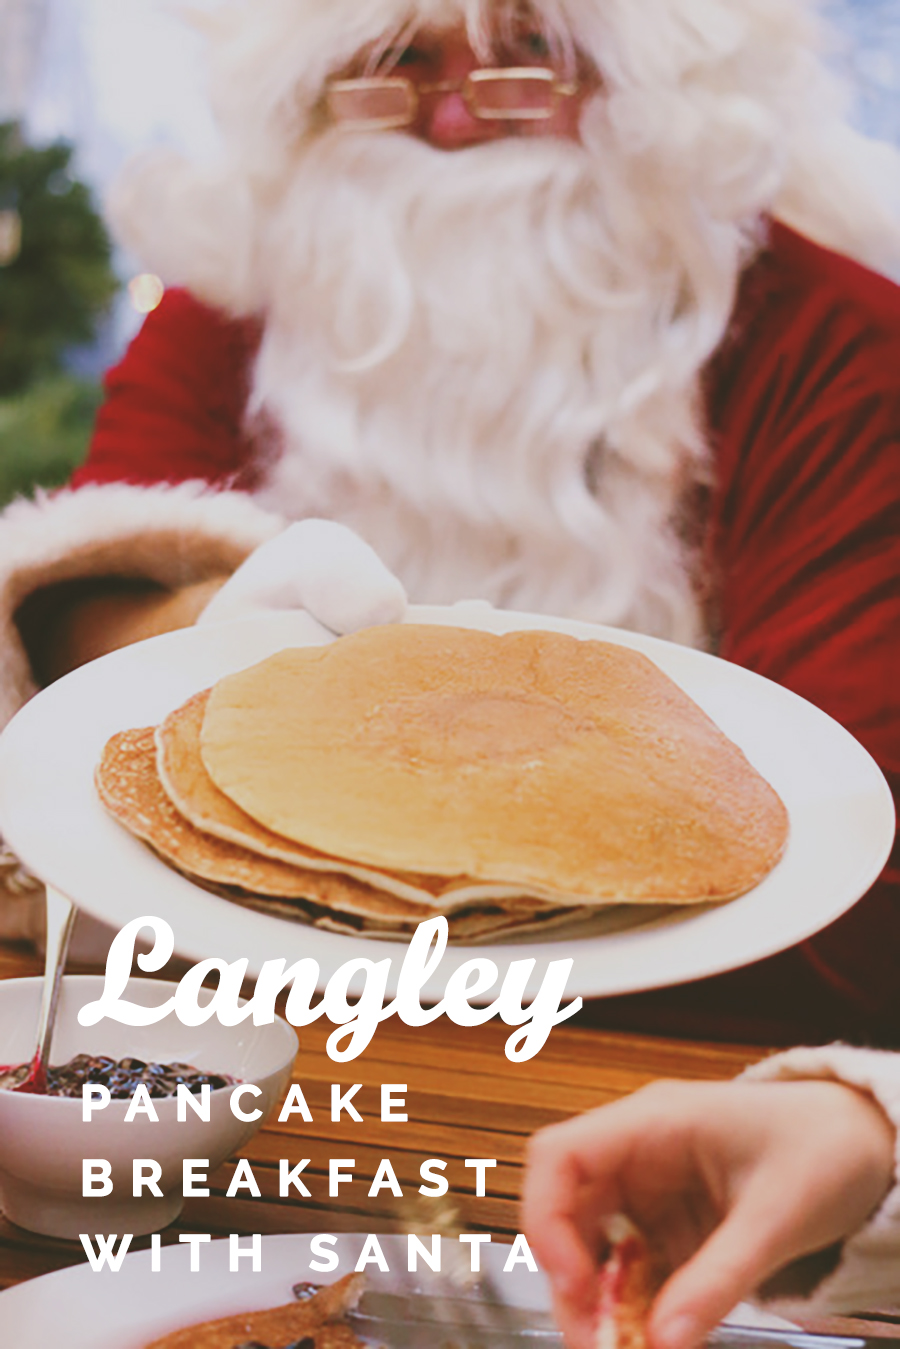 Pancake Breakfast with Santa - Krause Berry Farms is hosting its annual fundraising event for breast cancer research in memory of Liz Krause. Santa himself will be here to visit the kids, hear their wishes, and hand out candy canes. Come meet Santa and eat some warm and fluffy pancakes – all for a good cause! It is a first come first serve event; there are no tickets to purchase in advance.WHEN: December 10 •9:30am to 11:30amWHERE: Krause Berry Farms & Estate Winery, 6179 248 St, Langley (map)COST: FREE (all donations go to Breast Cancer Research Foundation)